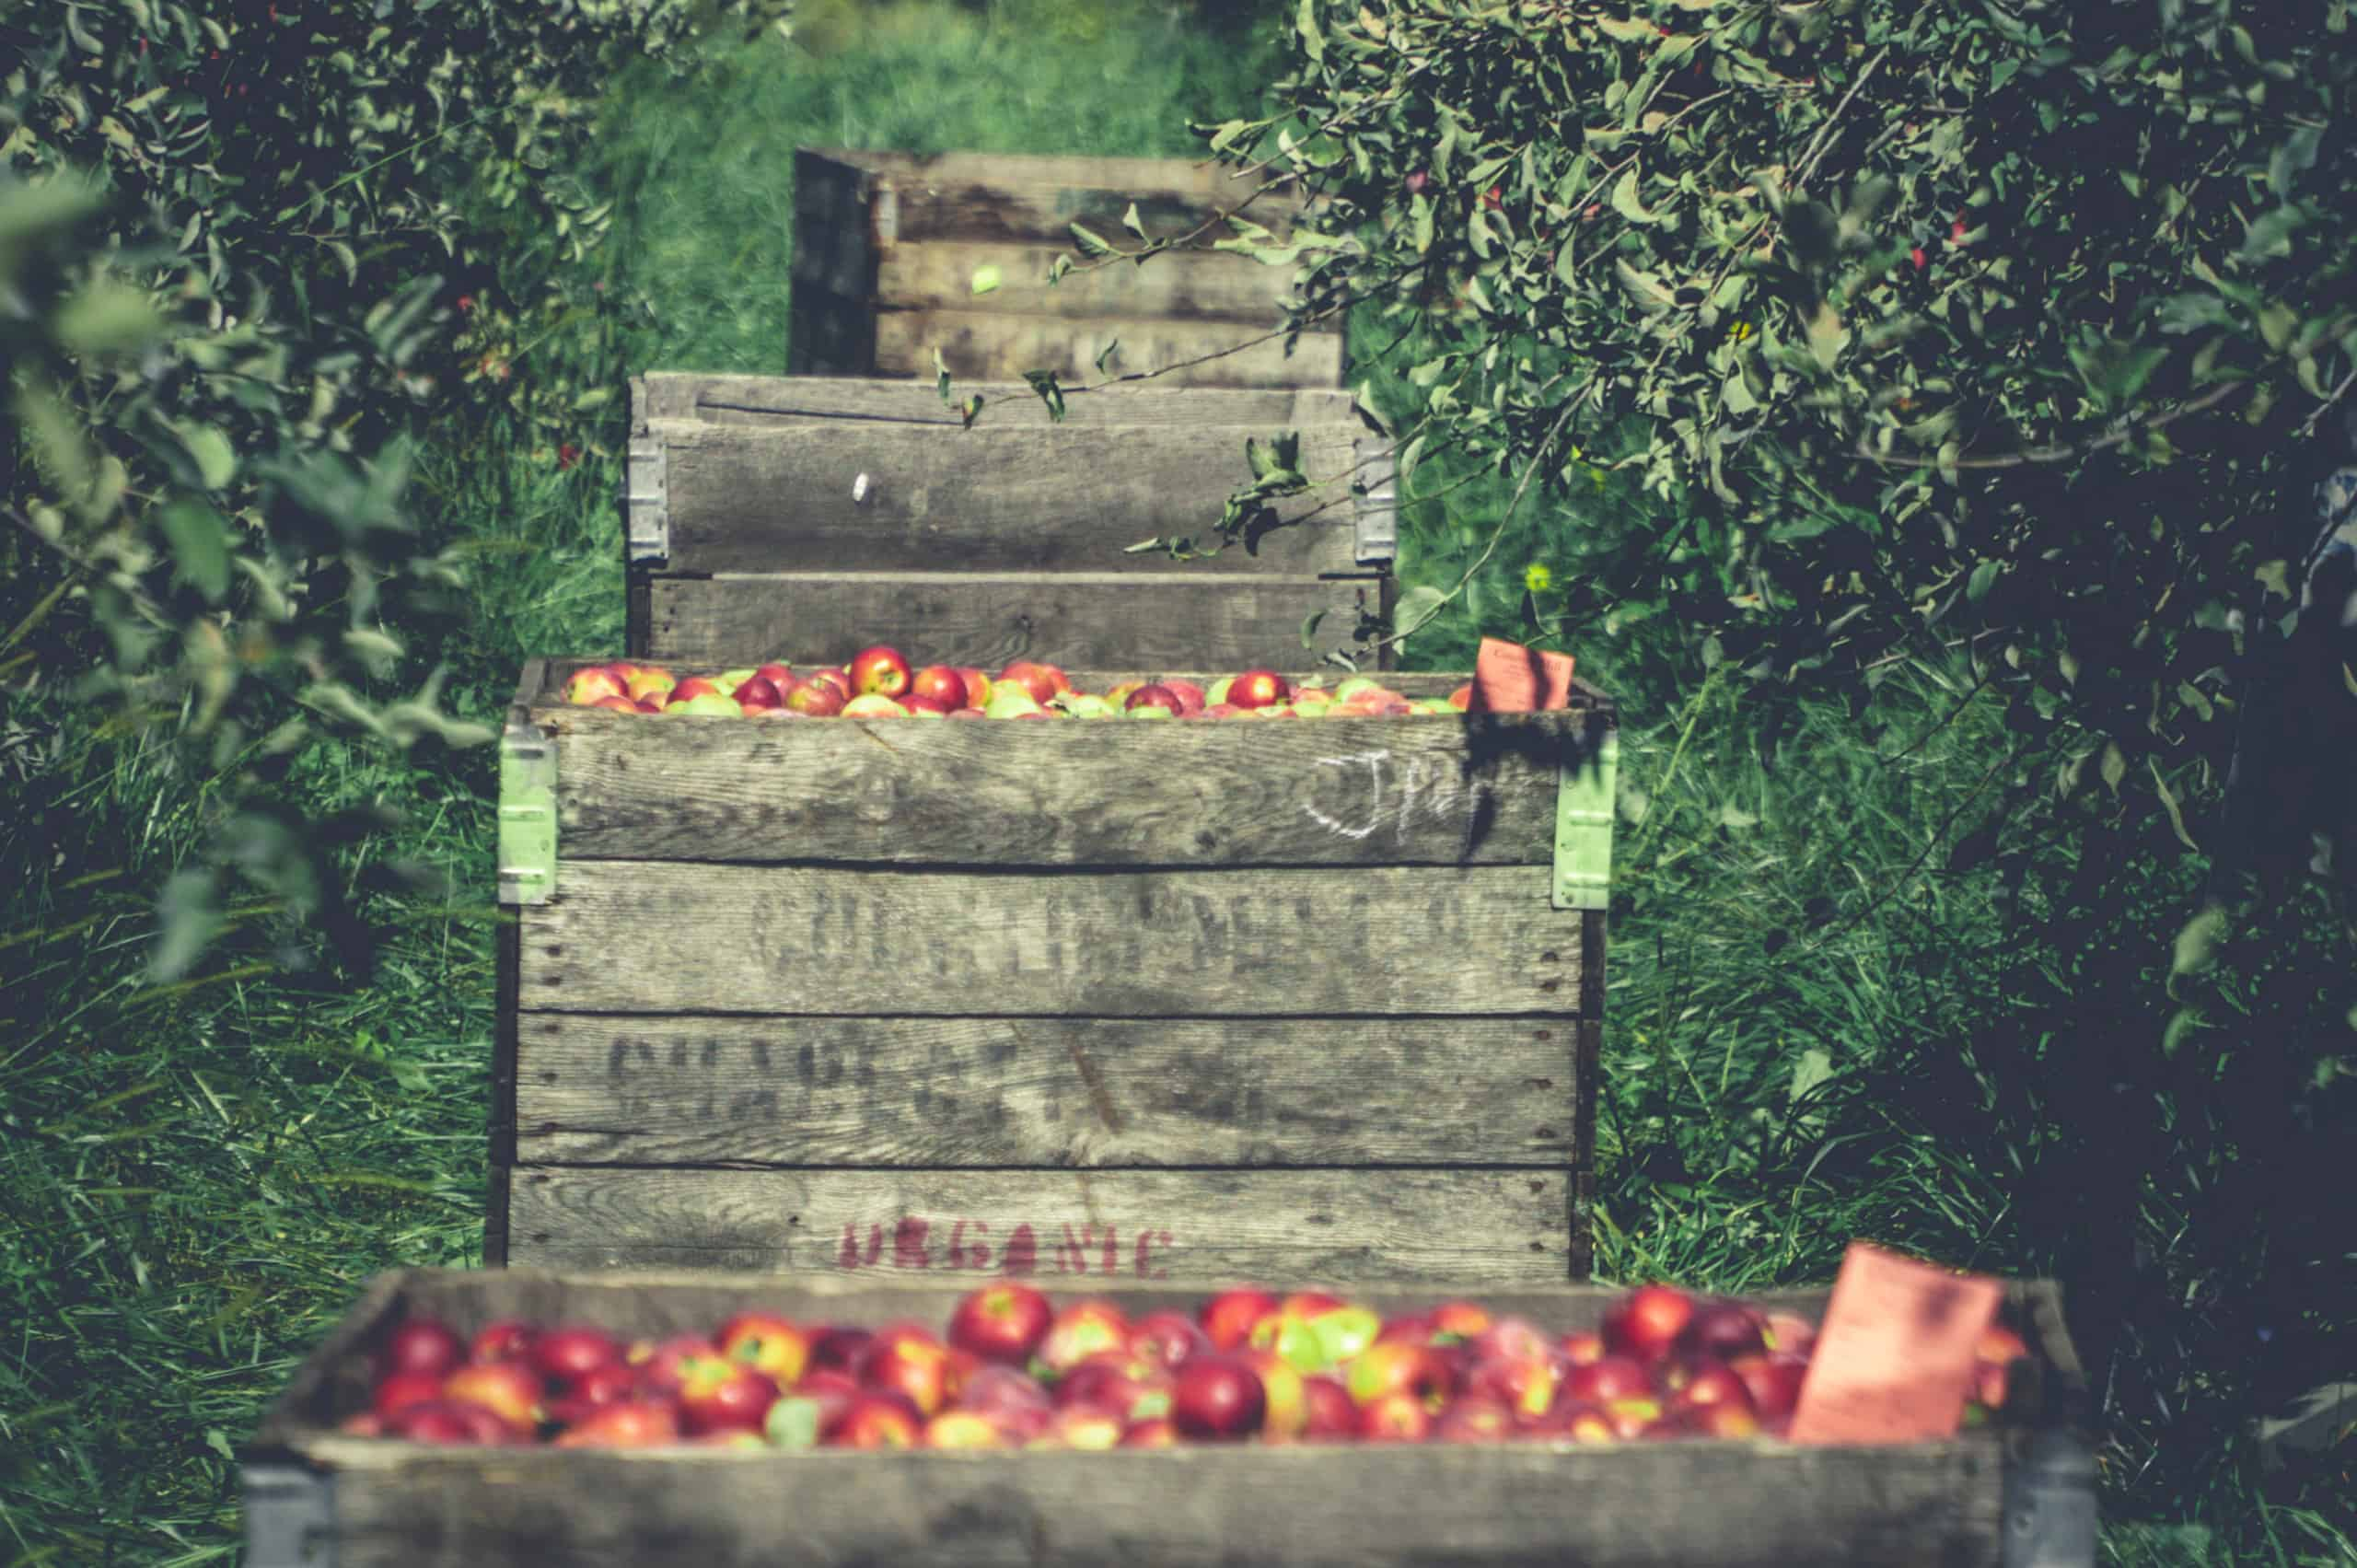 Yitto Paws uses only the finest ingredients like organic apples, and we believe in creating honest food you can trust.